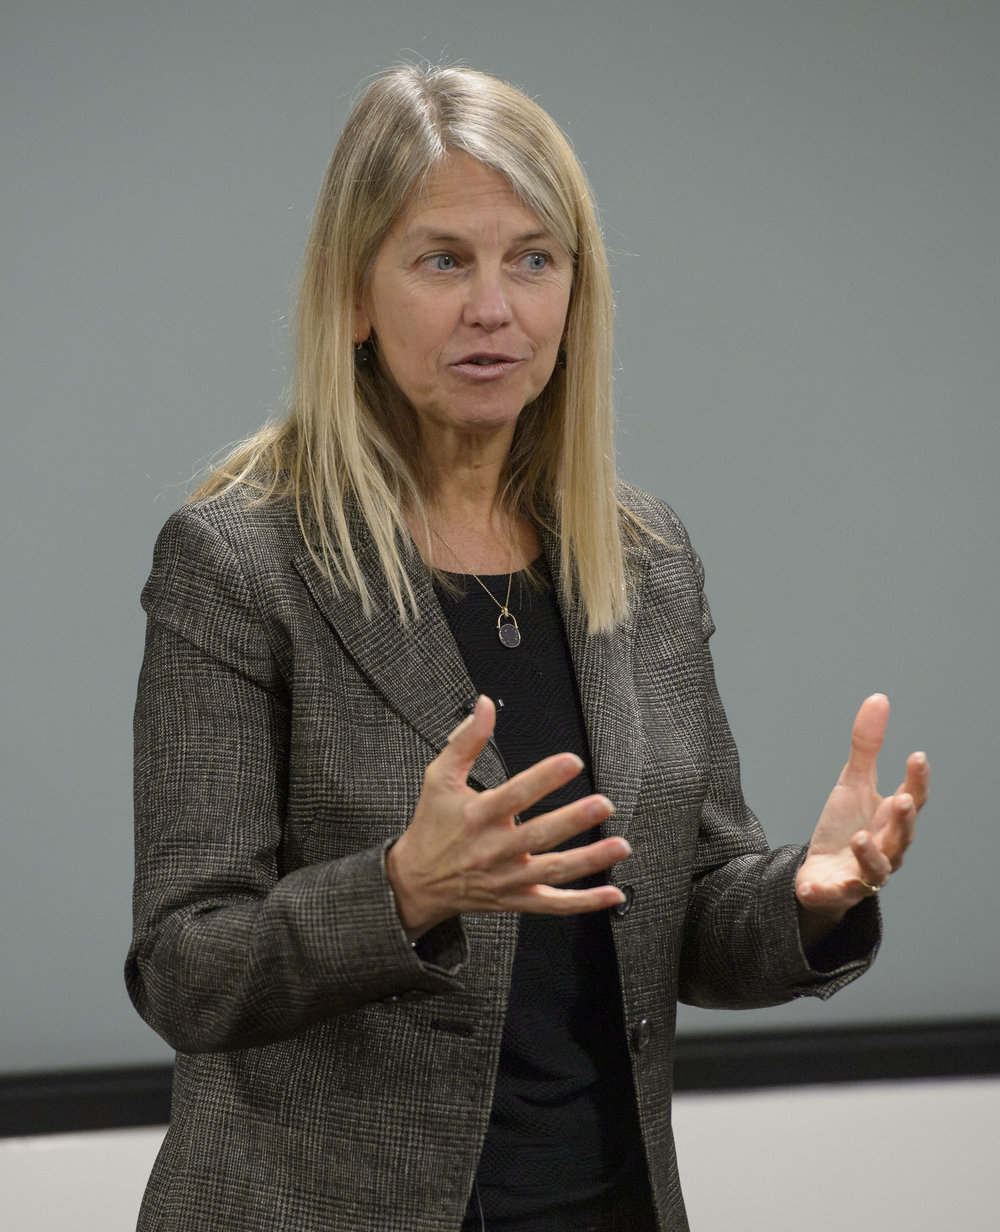 NASA Deputy Administrator Dava Newman welcomes participants to the iTech Forum at NASA Headquarters on December 7, 2016.